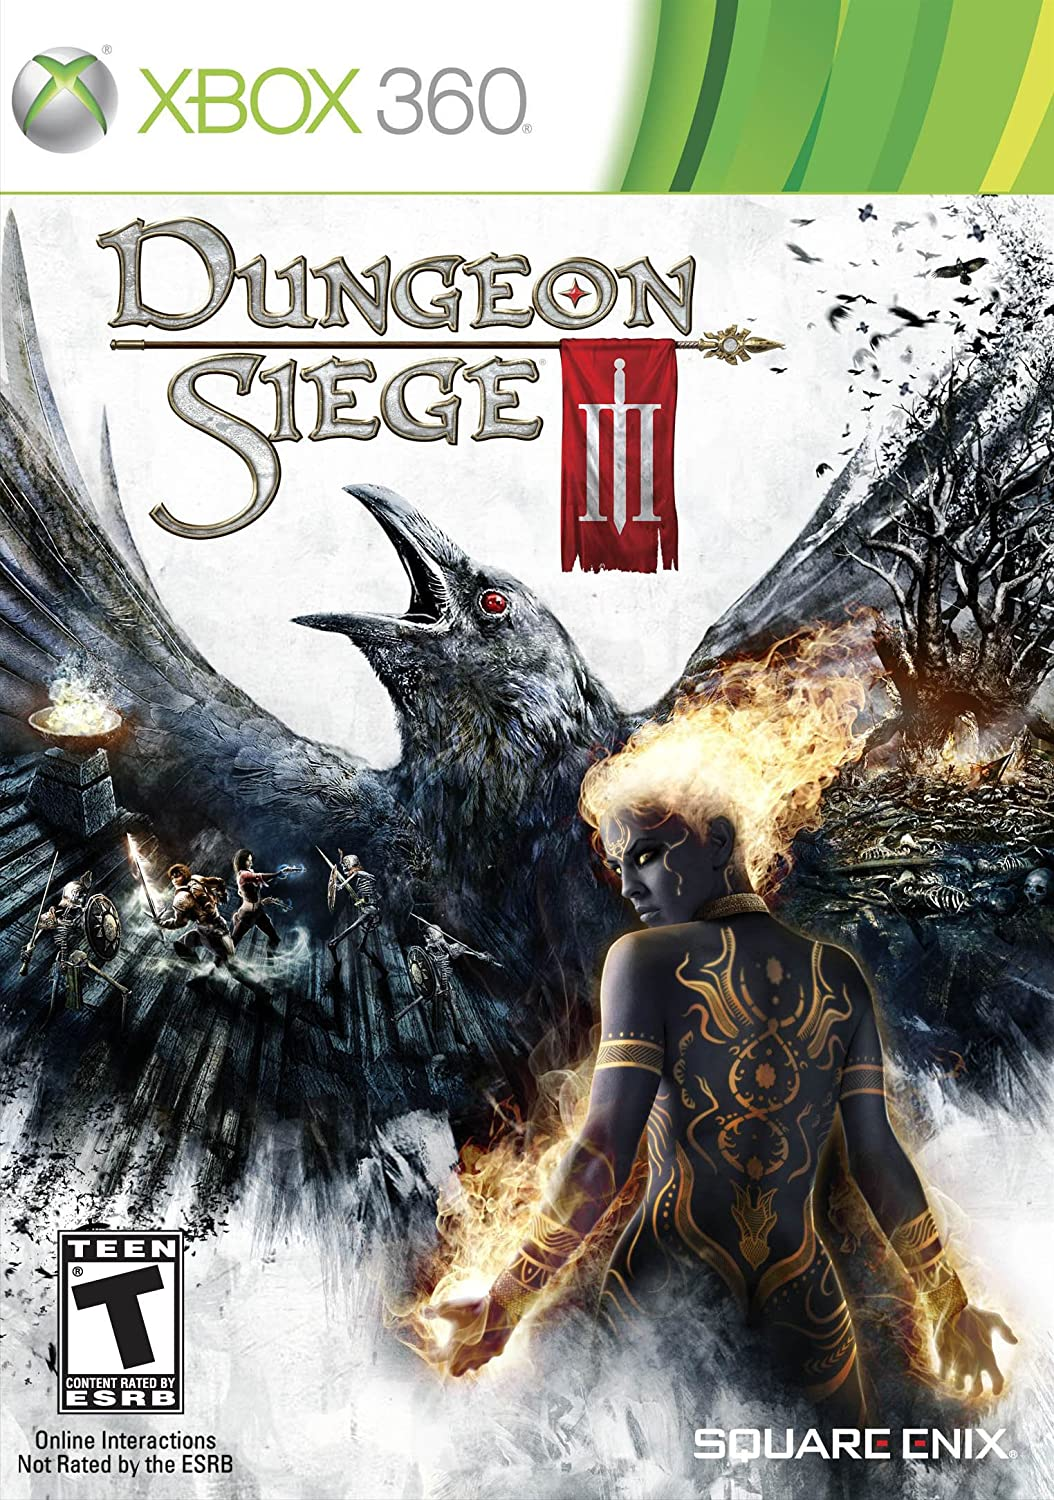 Black Friday Video Game Deals Dungeon Siege Iii Tin